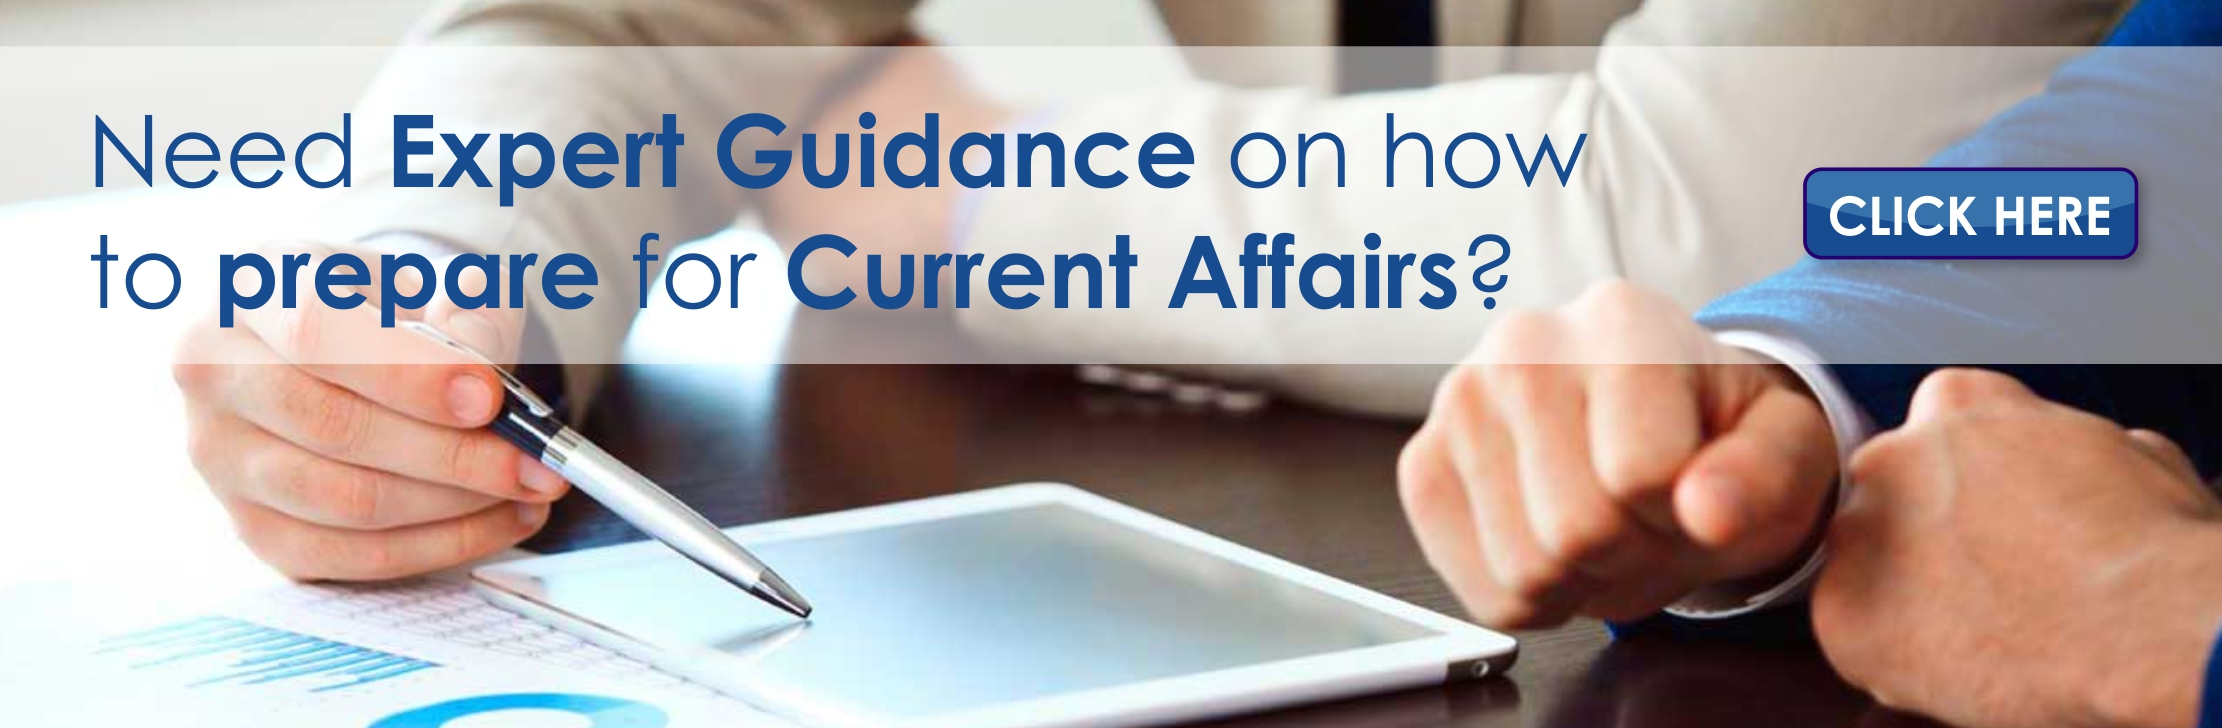 Need Expert Guidance on how to prepare for Current Affairs